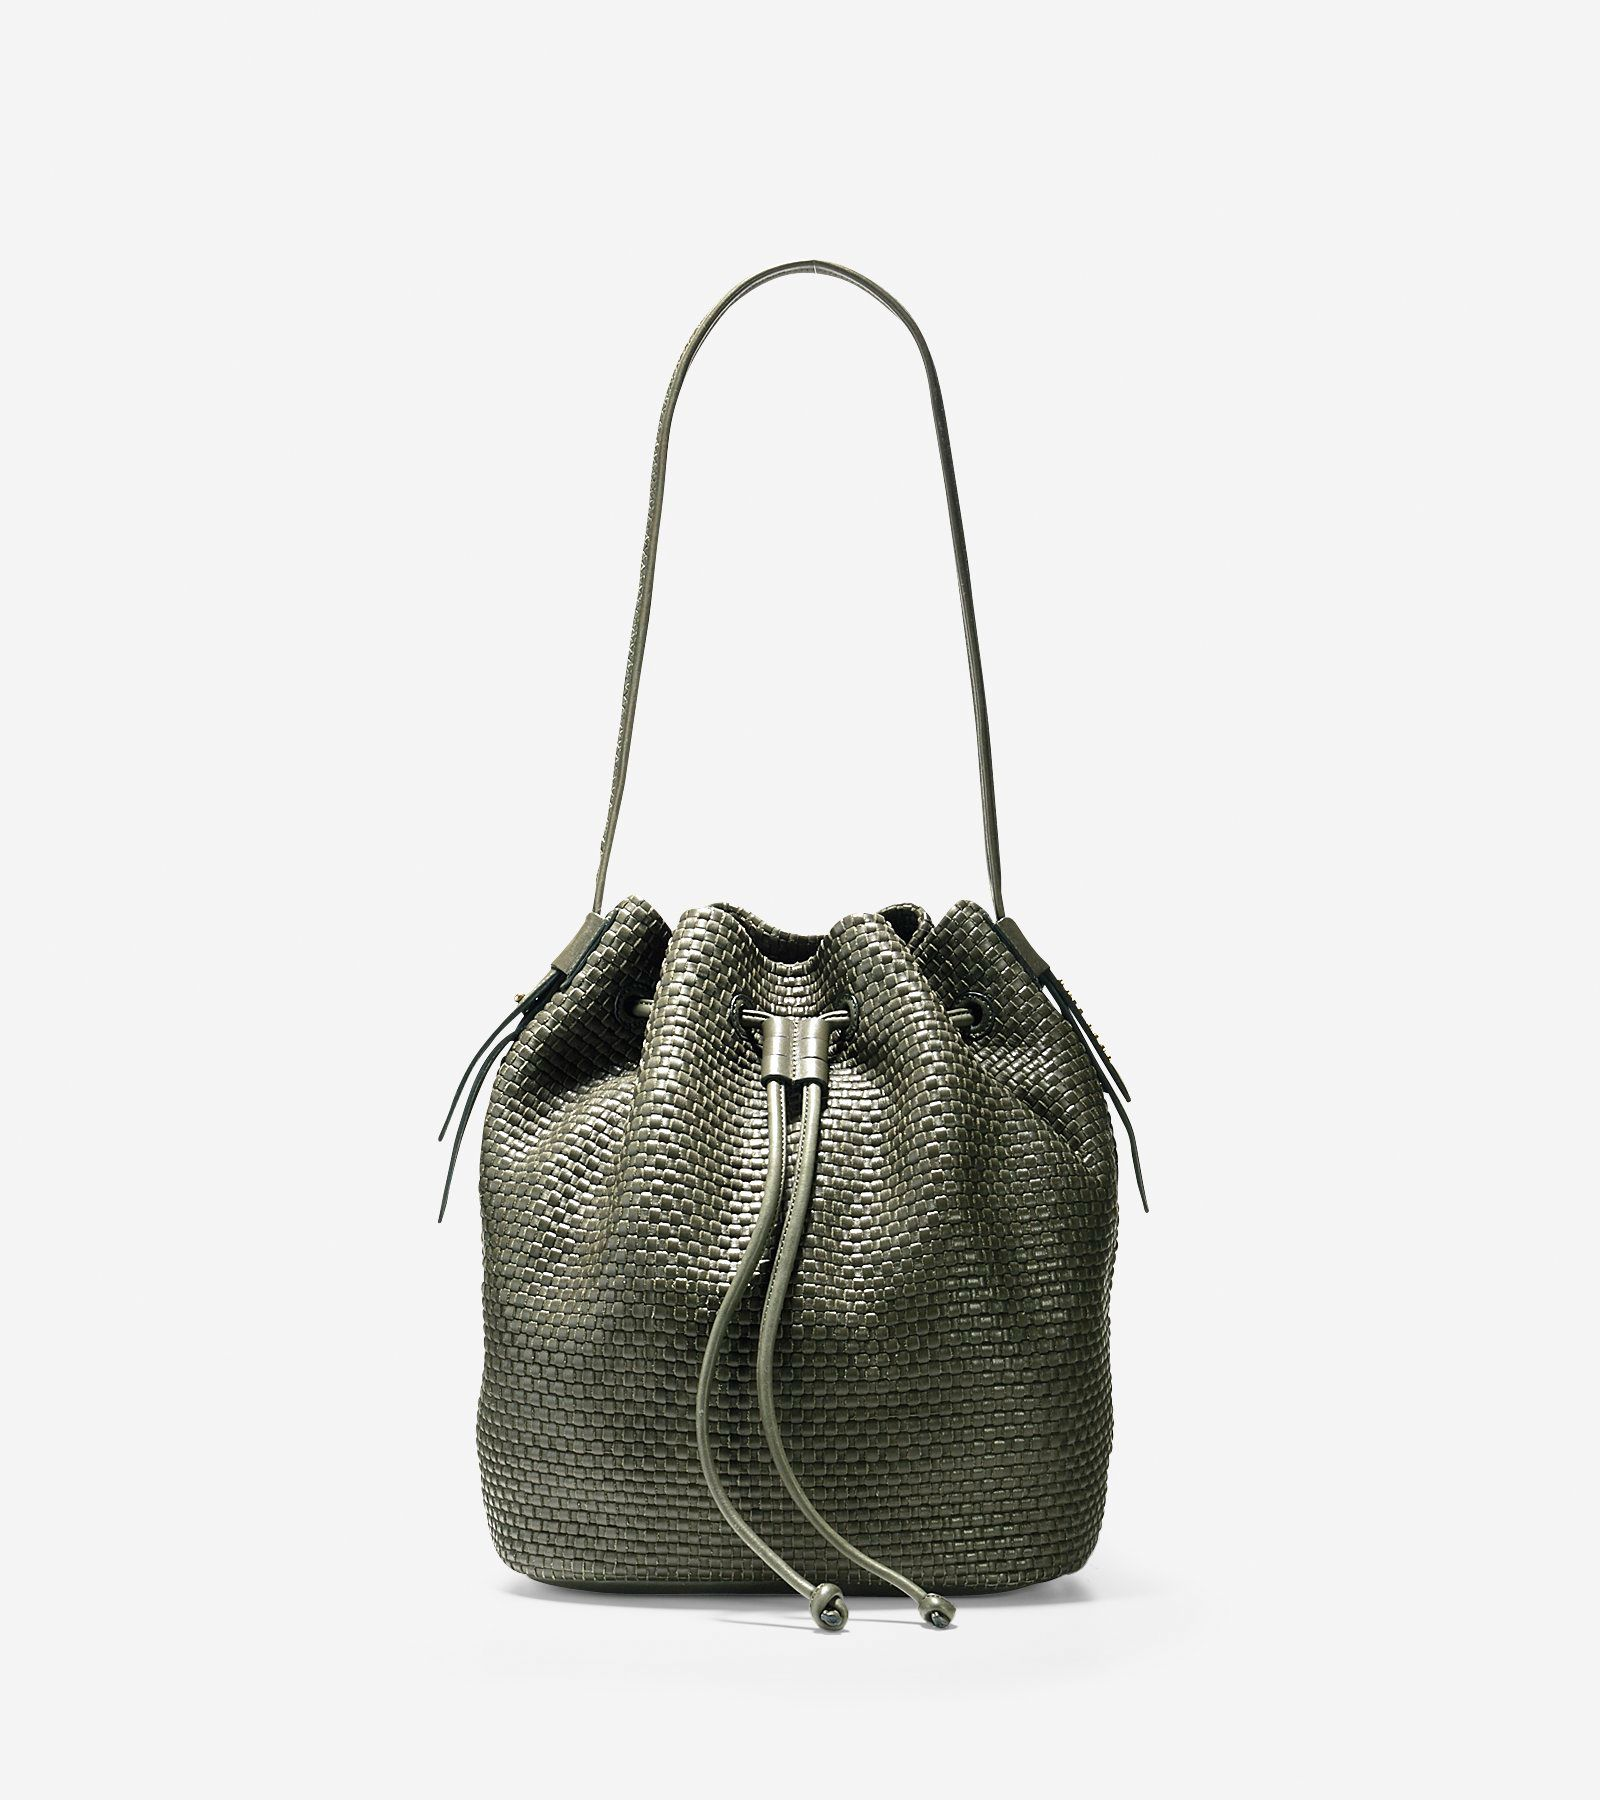 172d54d0ff8e Discover the bethany weave drawstring hobo in fatigue at Cole Haan and shop  our full collection of women s handbags and accessories.